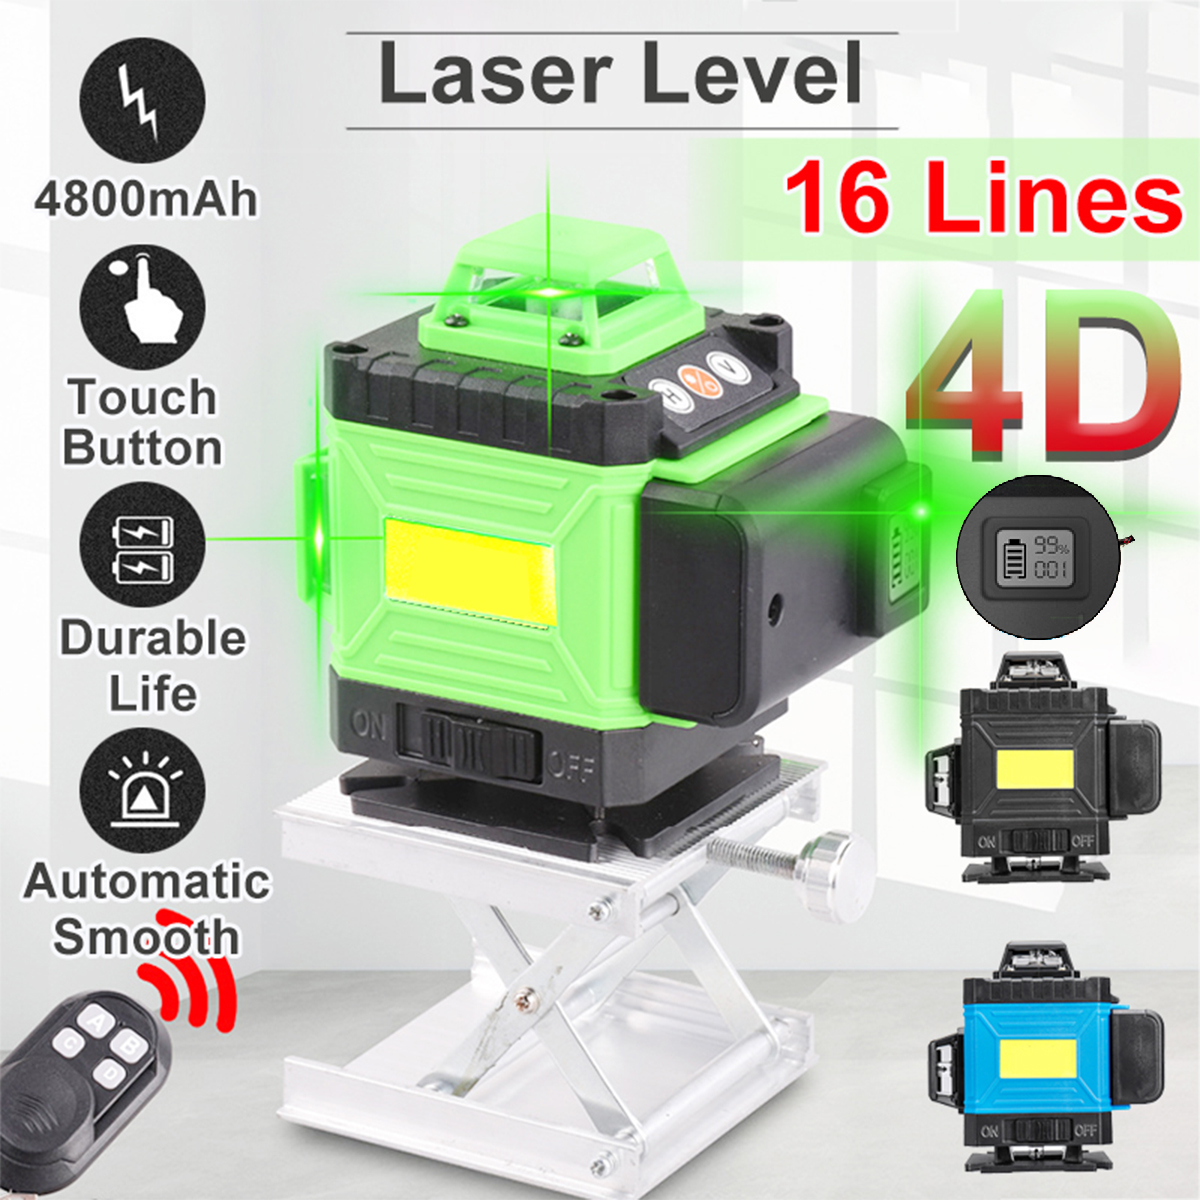 4D 16 Green Lines Laser Level Tripod Self-Leveling 360 Horizontal And Vertical Cross High Accuracy Outdoor Powerful Laser Beam